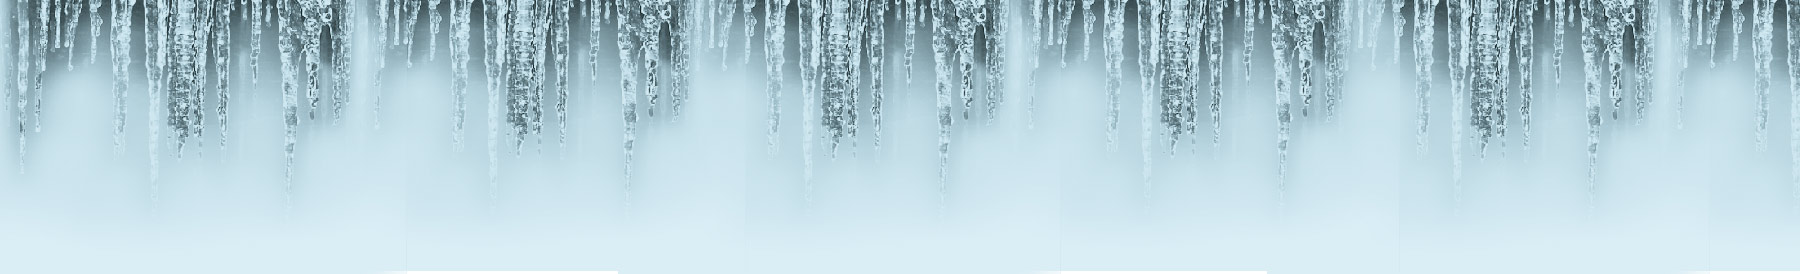 icicles image